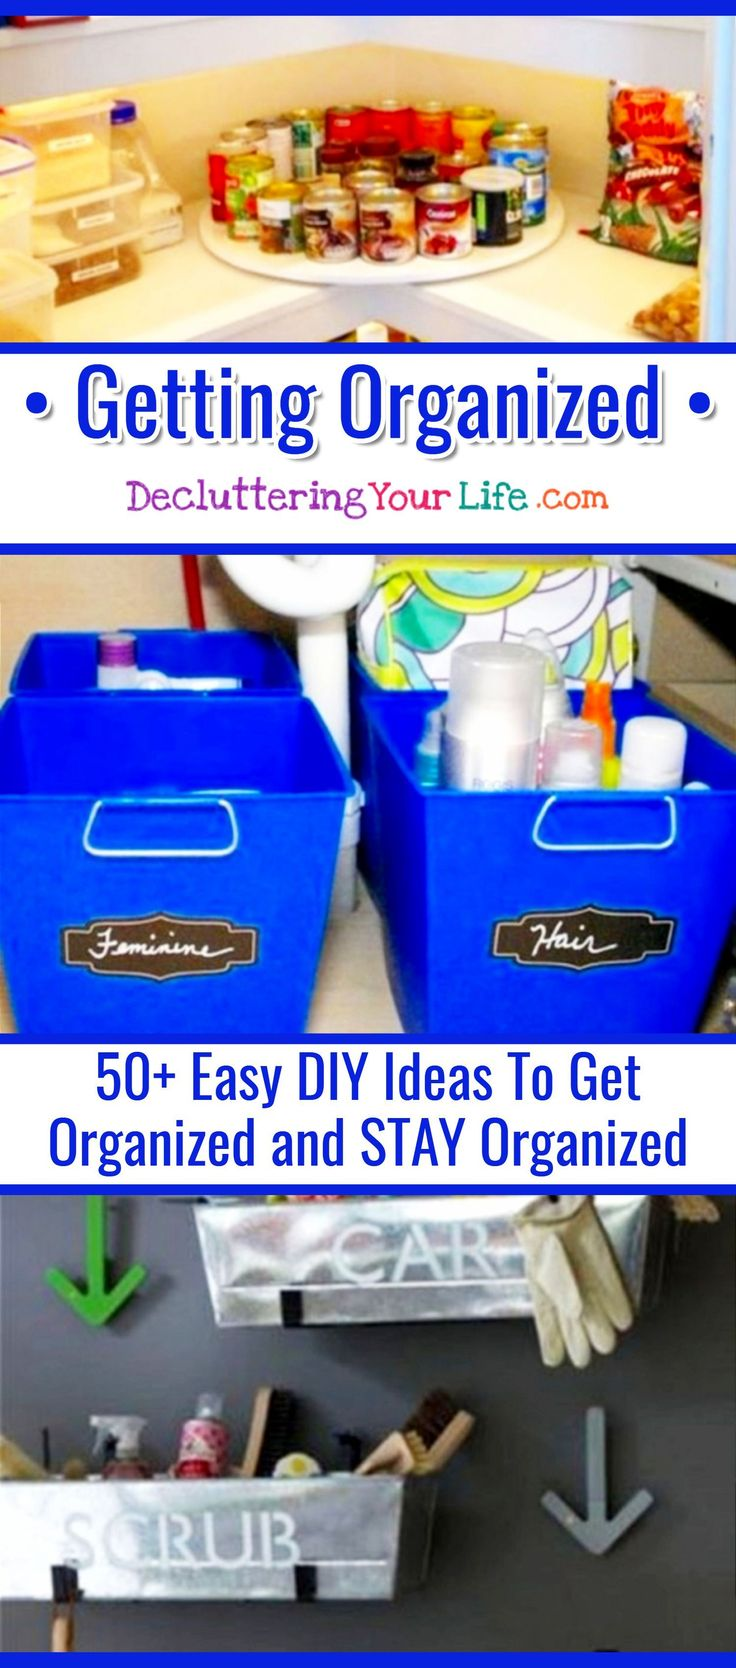 Getting Organized - 50+ Easy DIY Ideas To Get Organized and STAY Organized at home, at work and in your LIFE. Declutter and organize instead of just organizing clutter. Get control on your clutter and try these simple getting organized hacks! #clutterhacks #organizingclutter